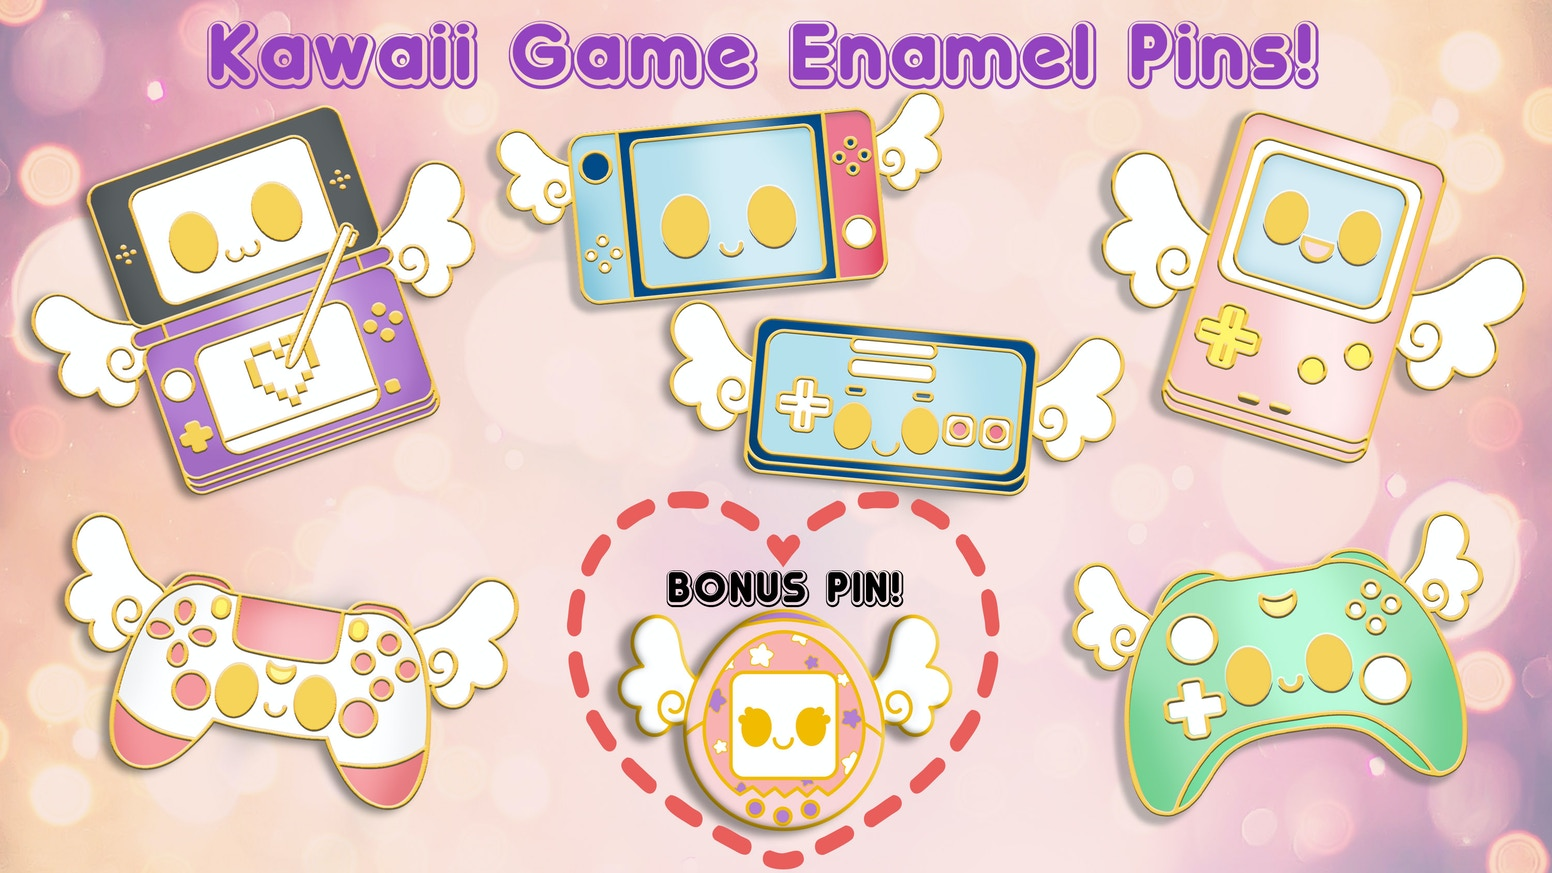 Help create original kawaii magical game console pins to show off the gamer in you!